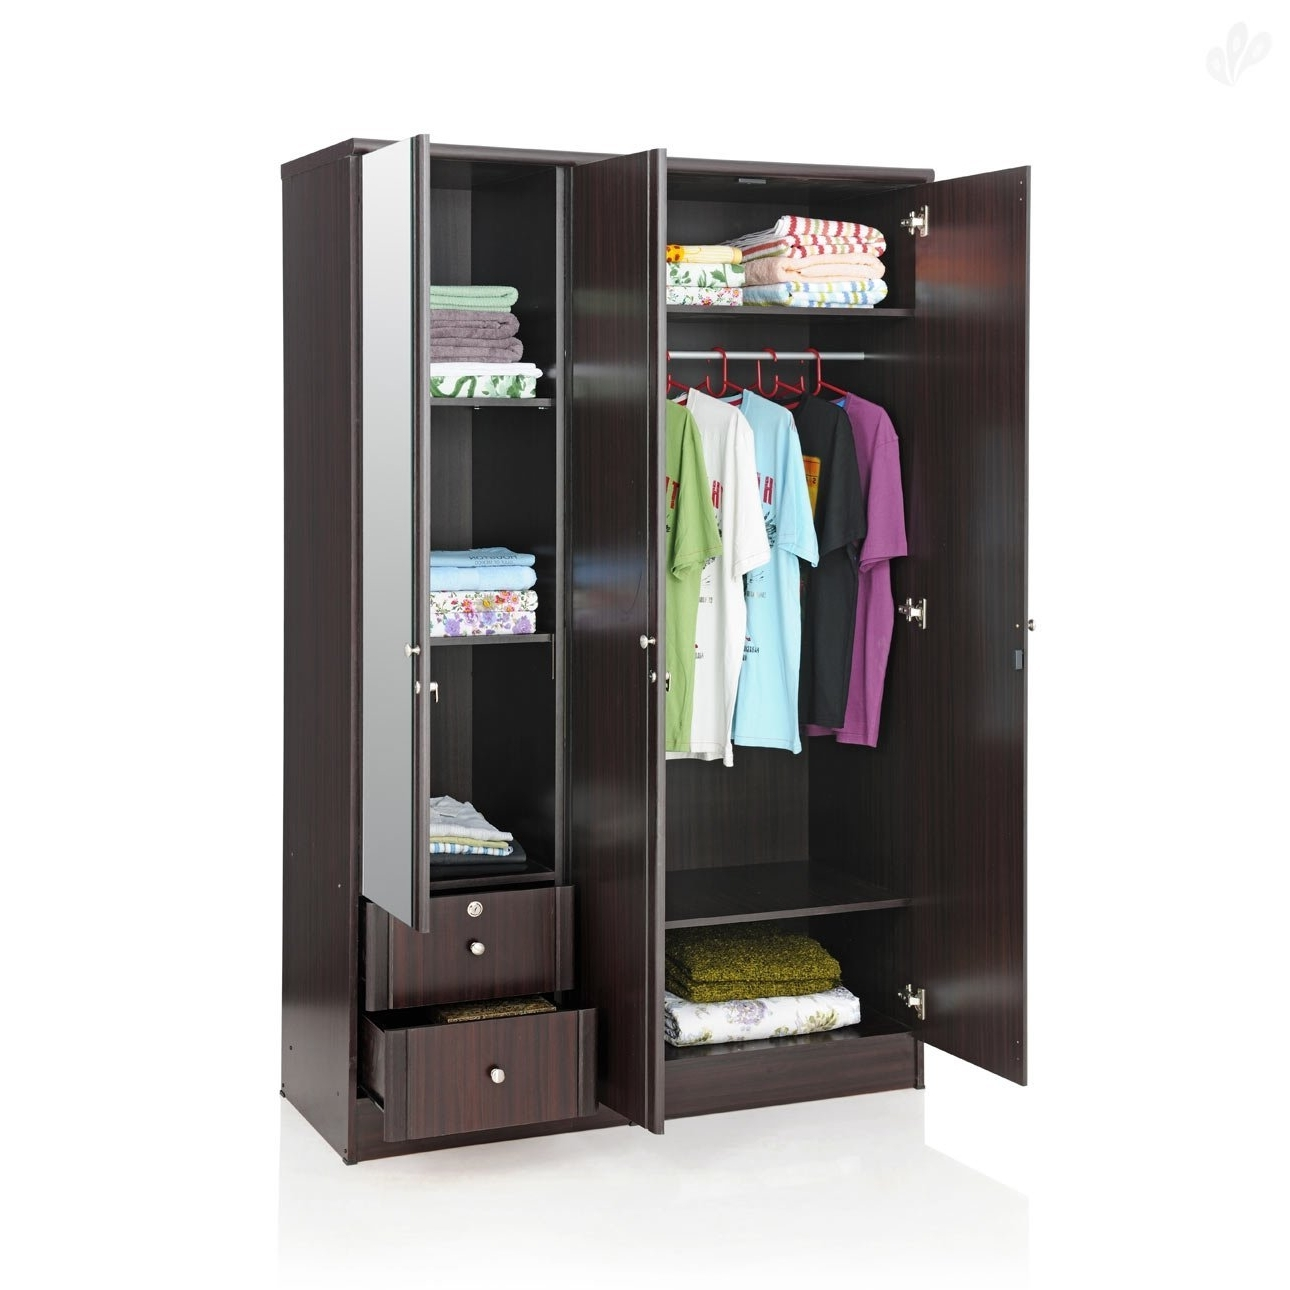 Widely Used Three Door Wardrobes With Mirror Intended For Royal Oak Berlin Three Door Wardrobe With Mirror (brown): Amazon (View 5 of 15)